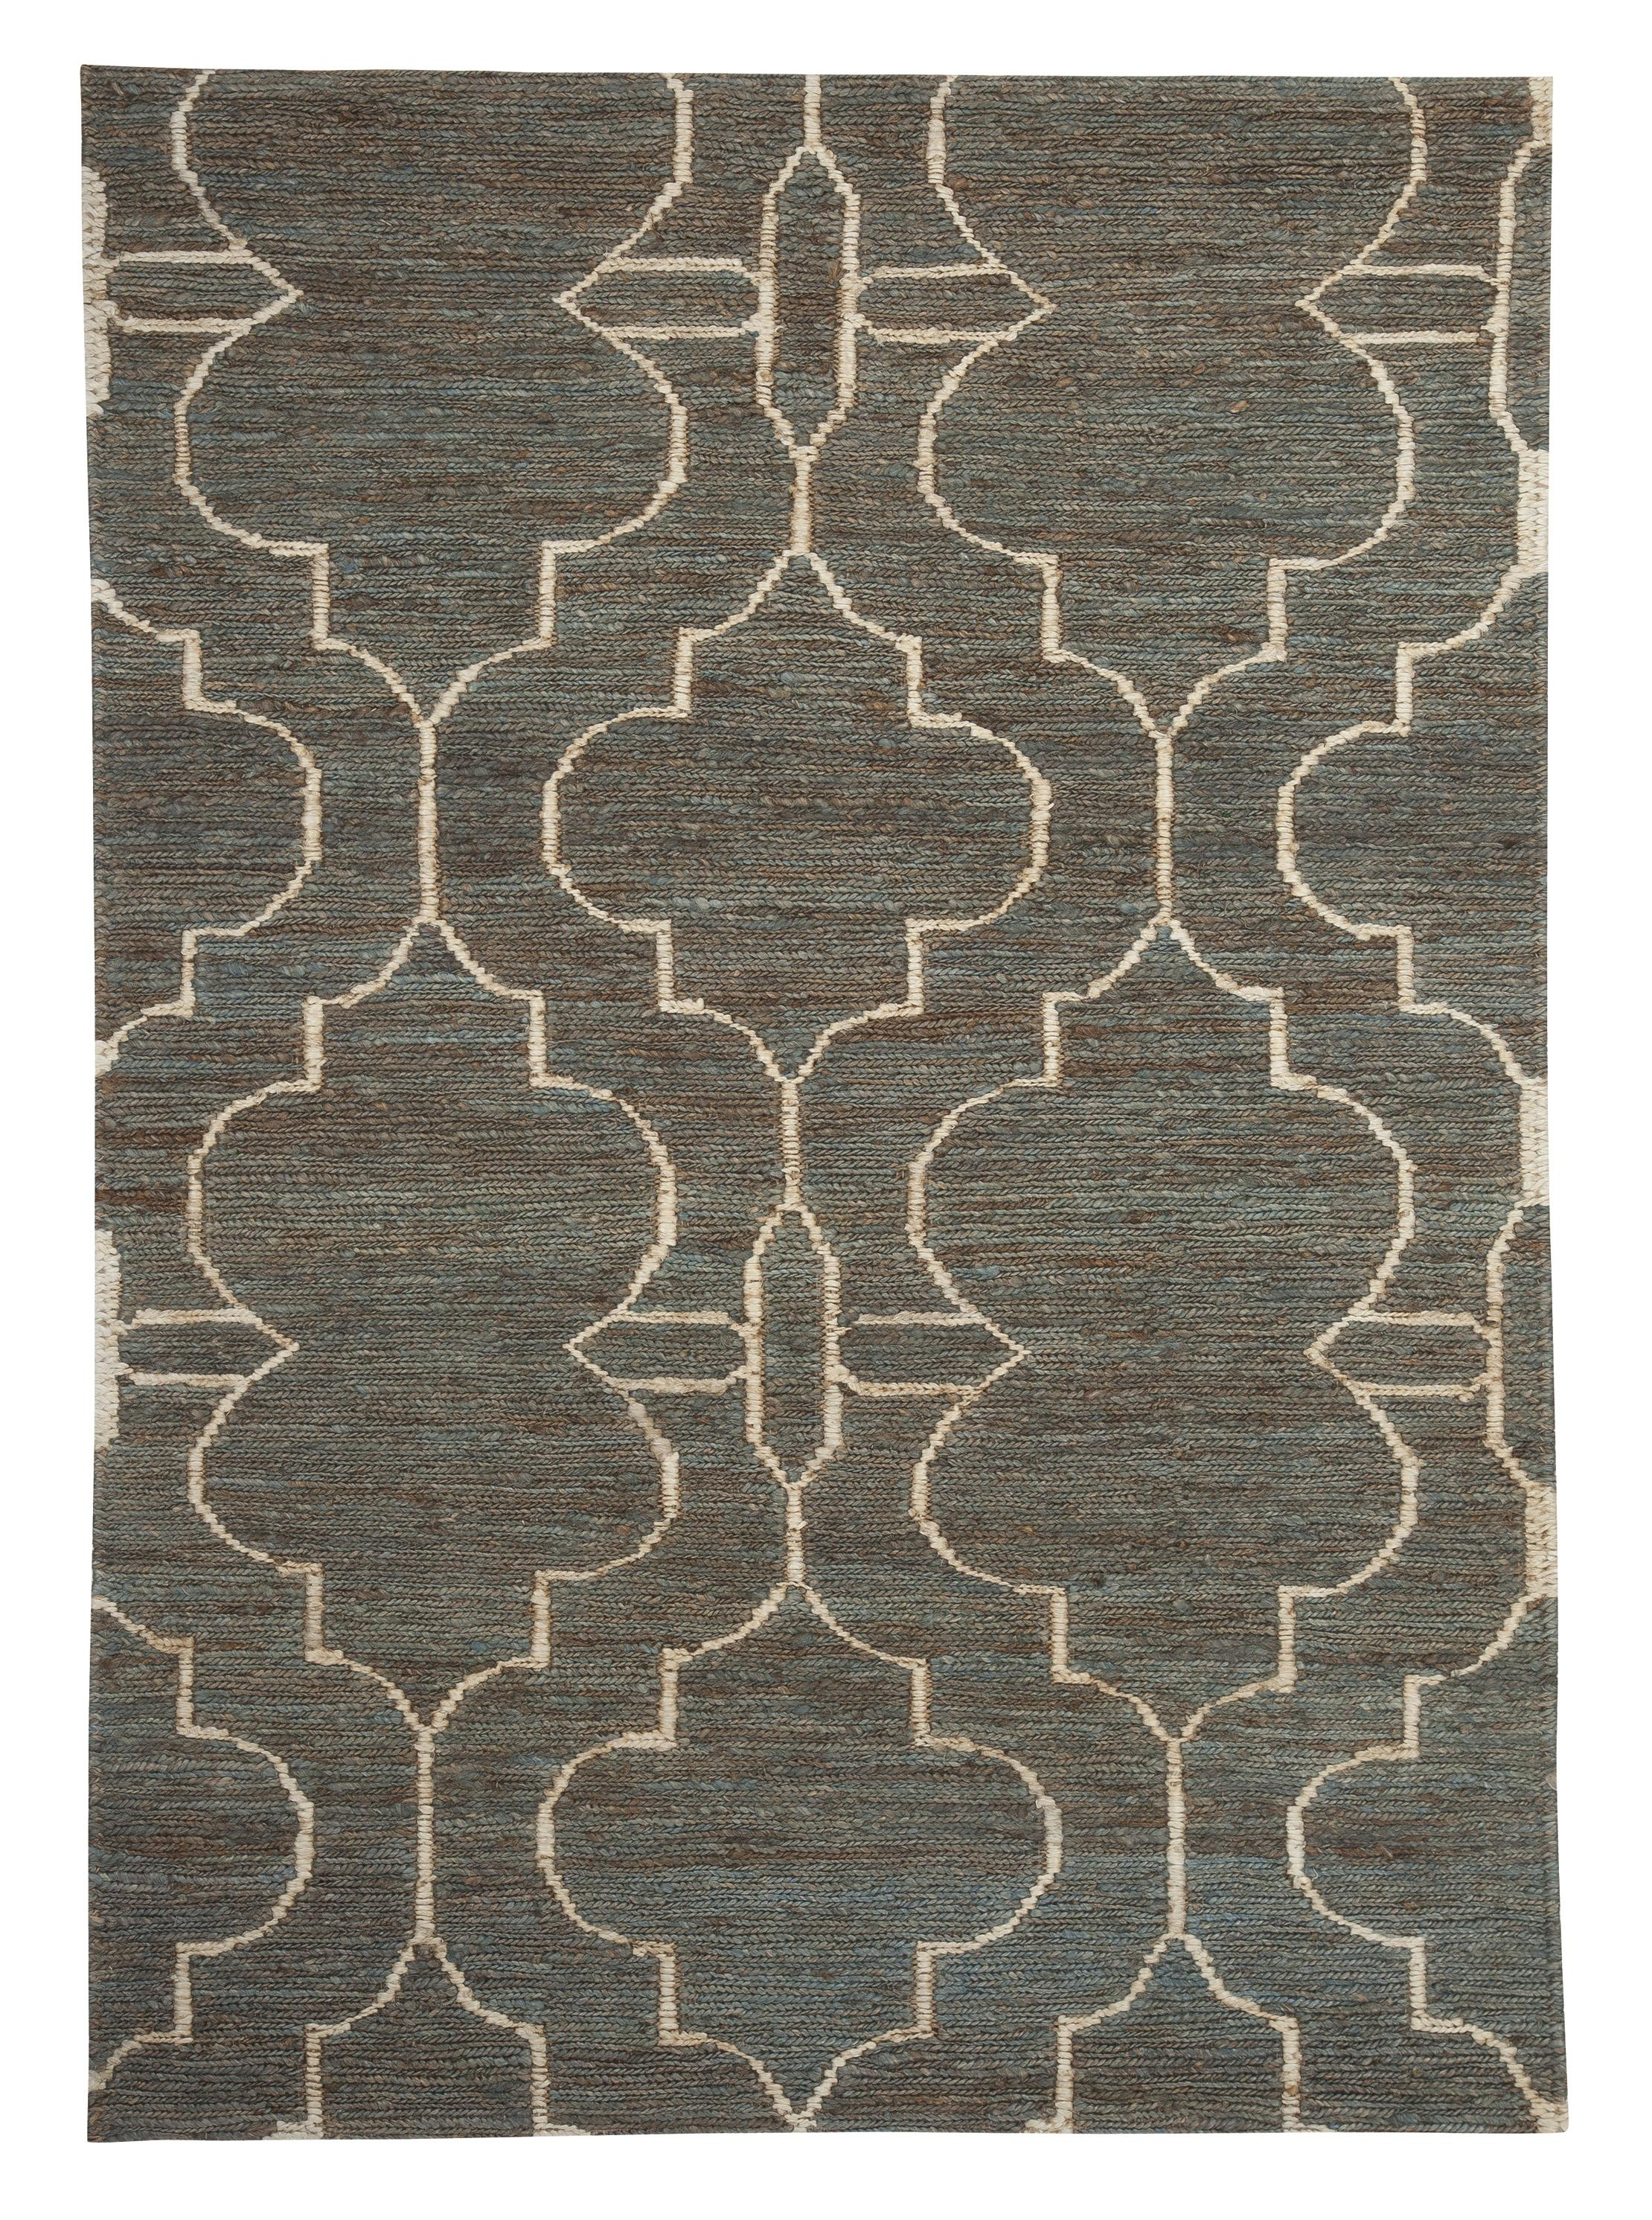 Signature Design by Ashley Contemporary Area Rugs Gillian Teal Medium Rug - Item Number: R401472